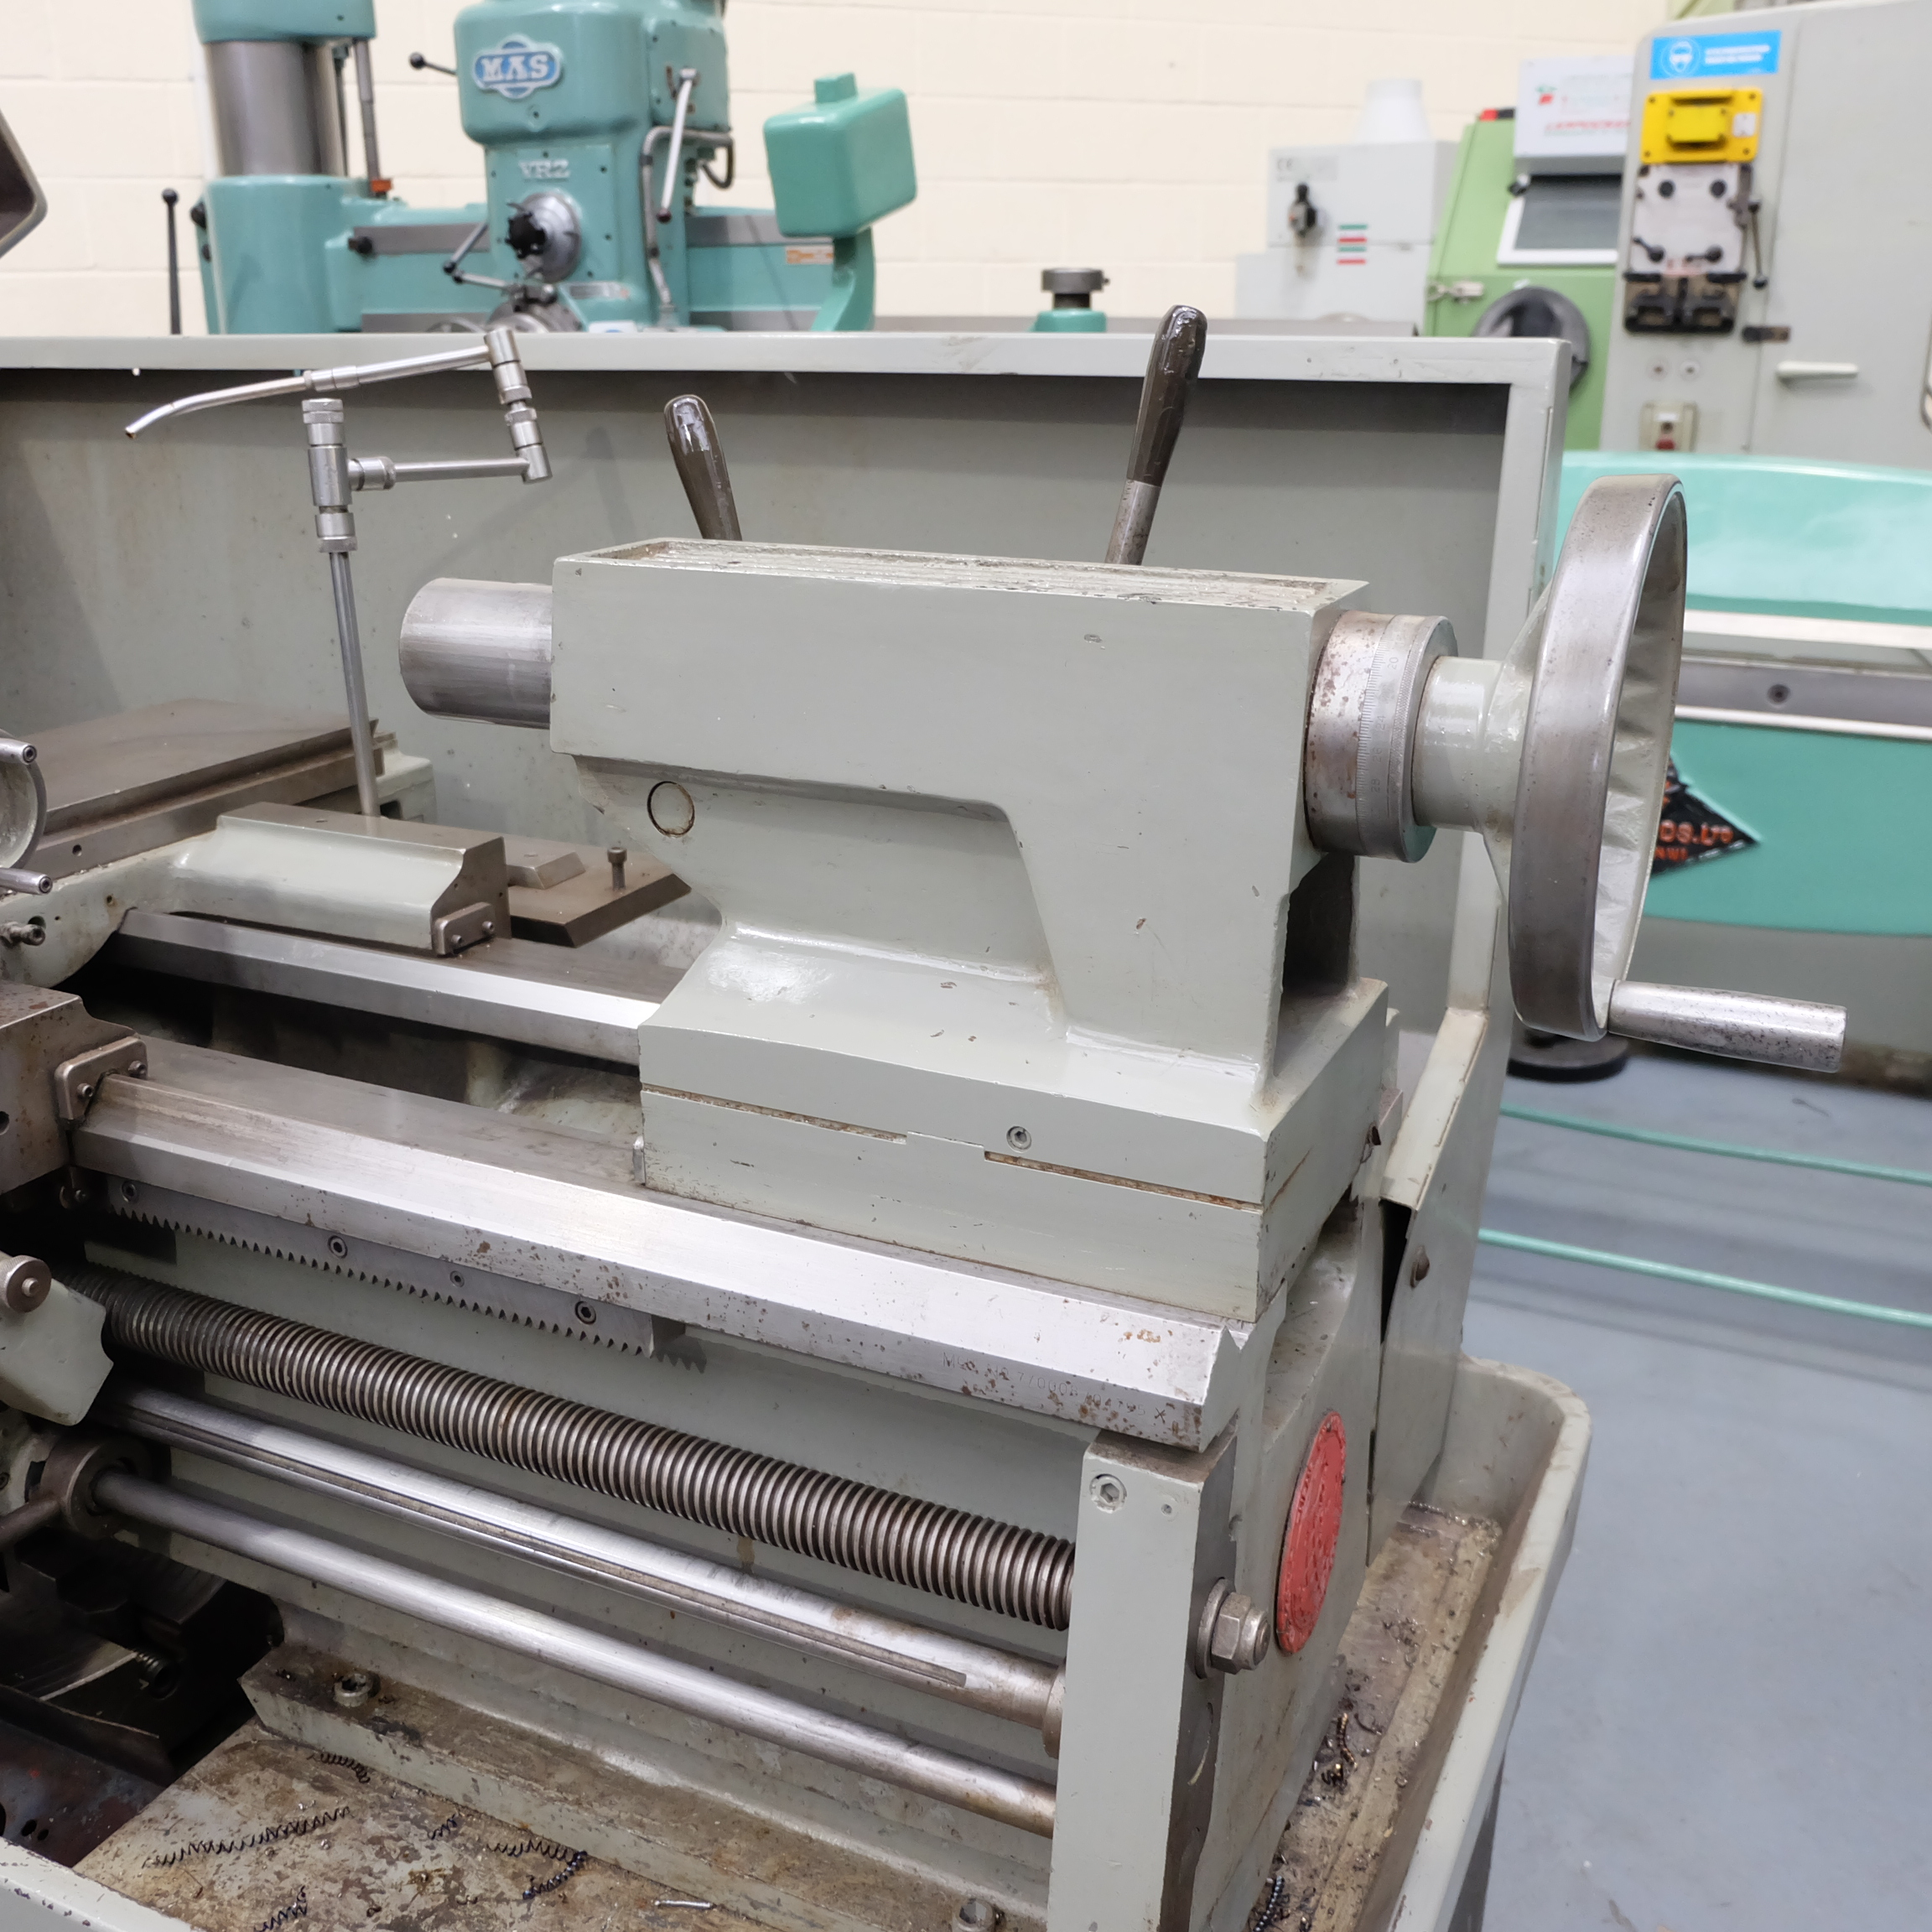 Colchester Mascot 1600 Gap Bed Centre Lathe. - Image 7 of 10